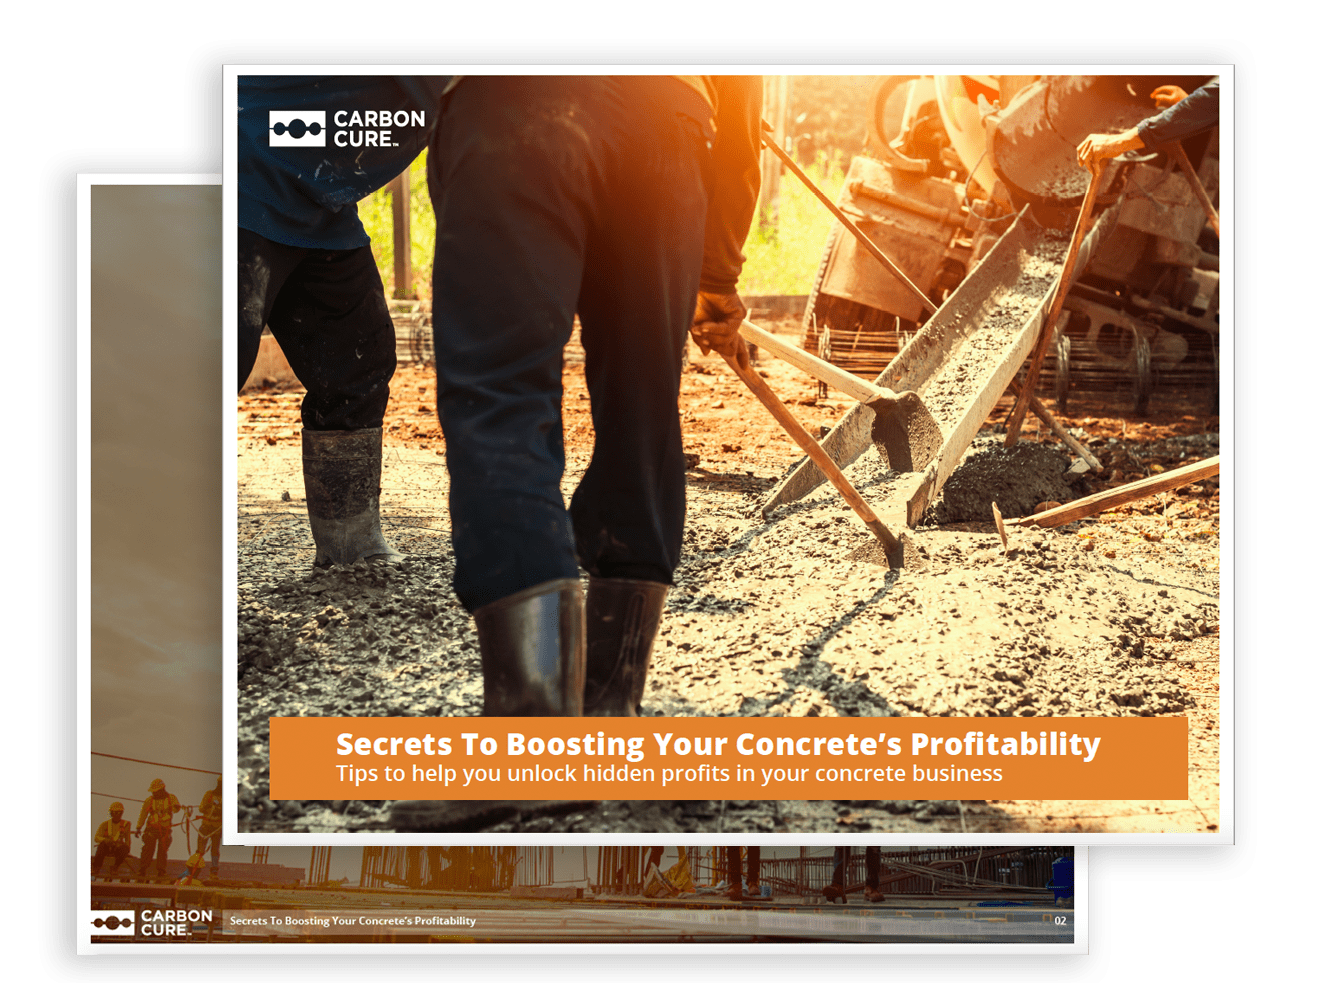 Secrets to Boosting Your Concrete's Profitability